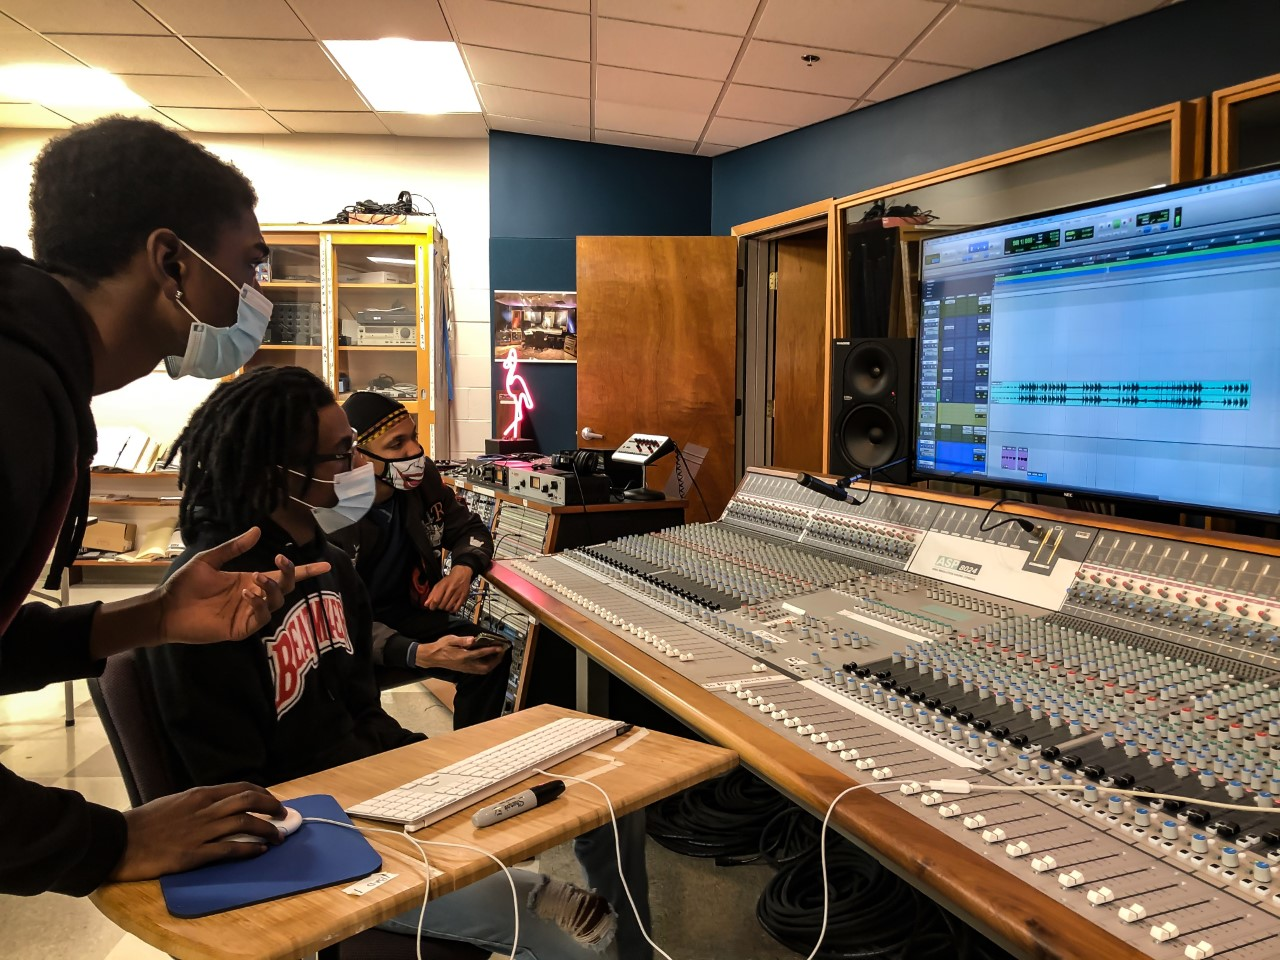 Three Nashville State Community College students, dressed in black sweatshirts and wearing face masks, look at a computer screen while working on a sound board.